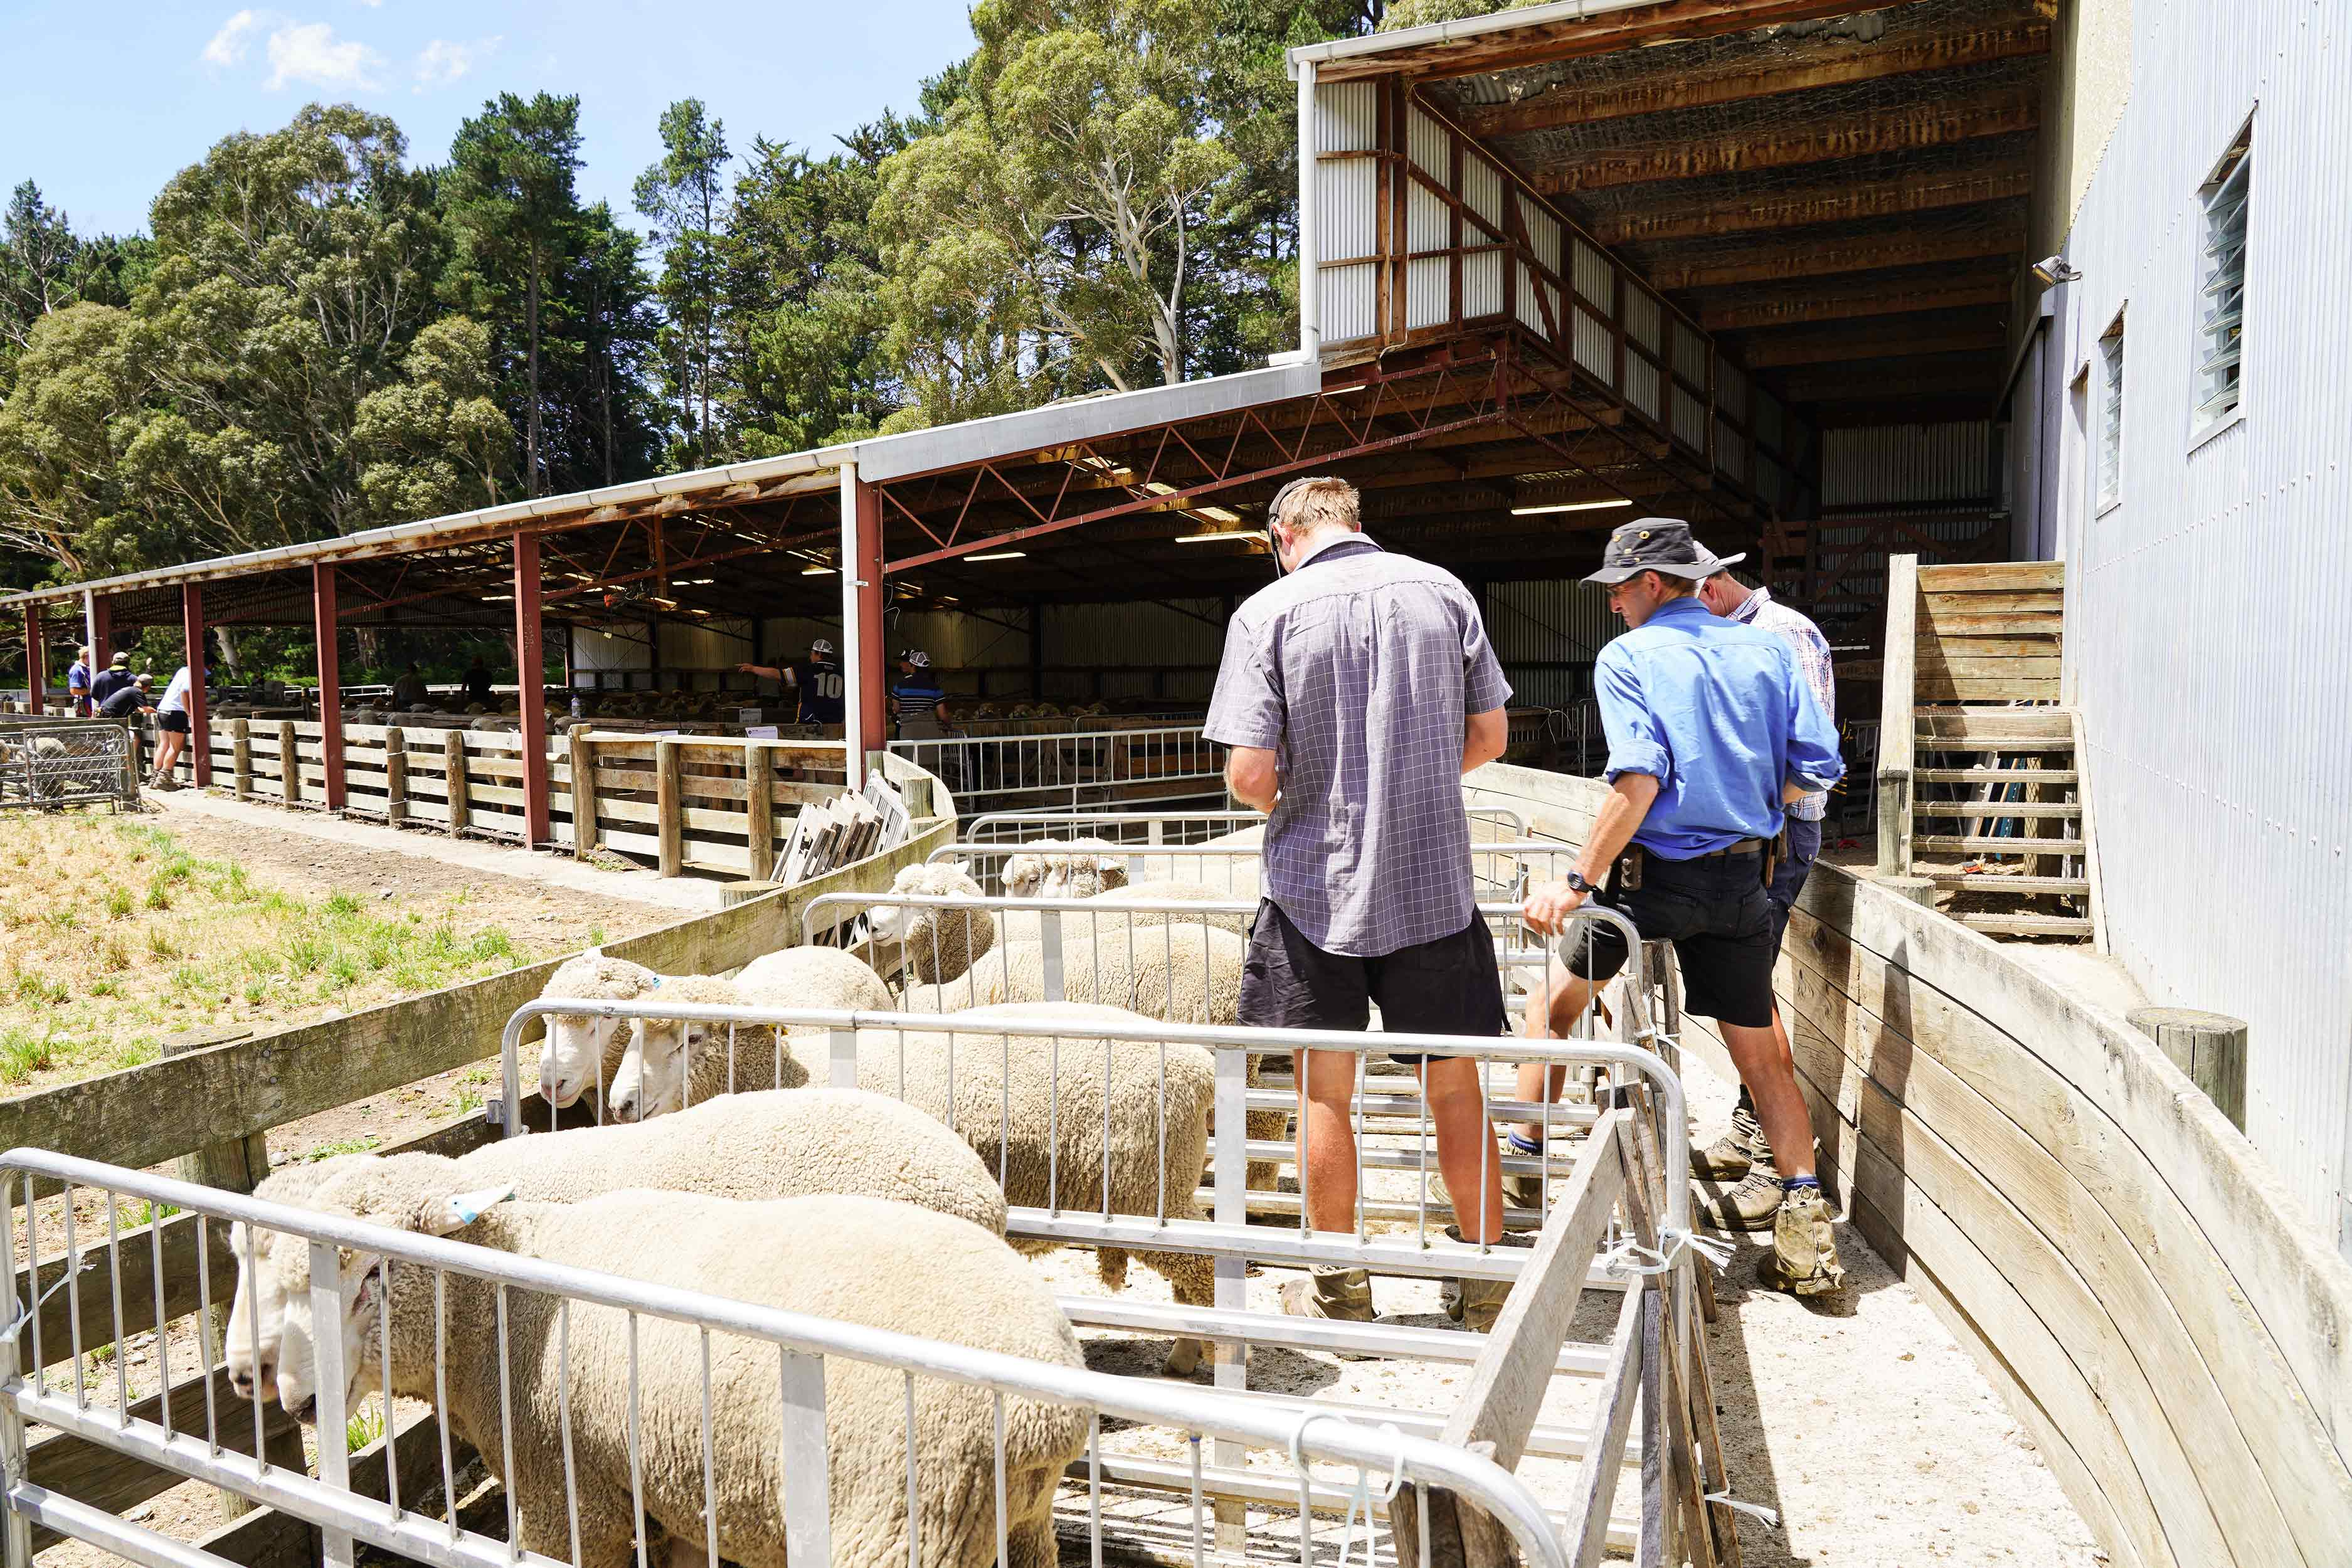 Farmers reviewing sheep for structural faults